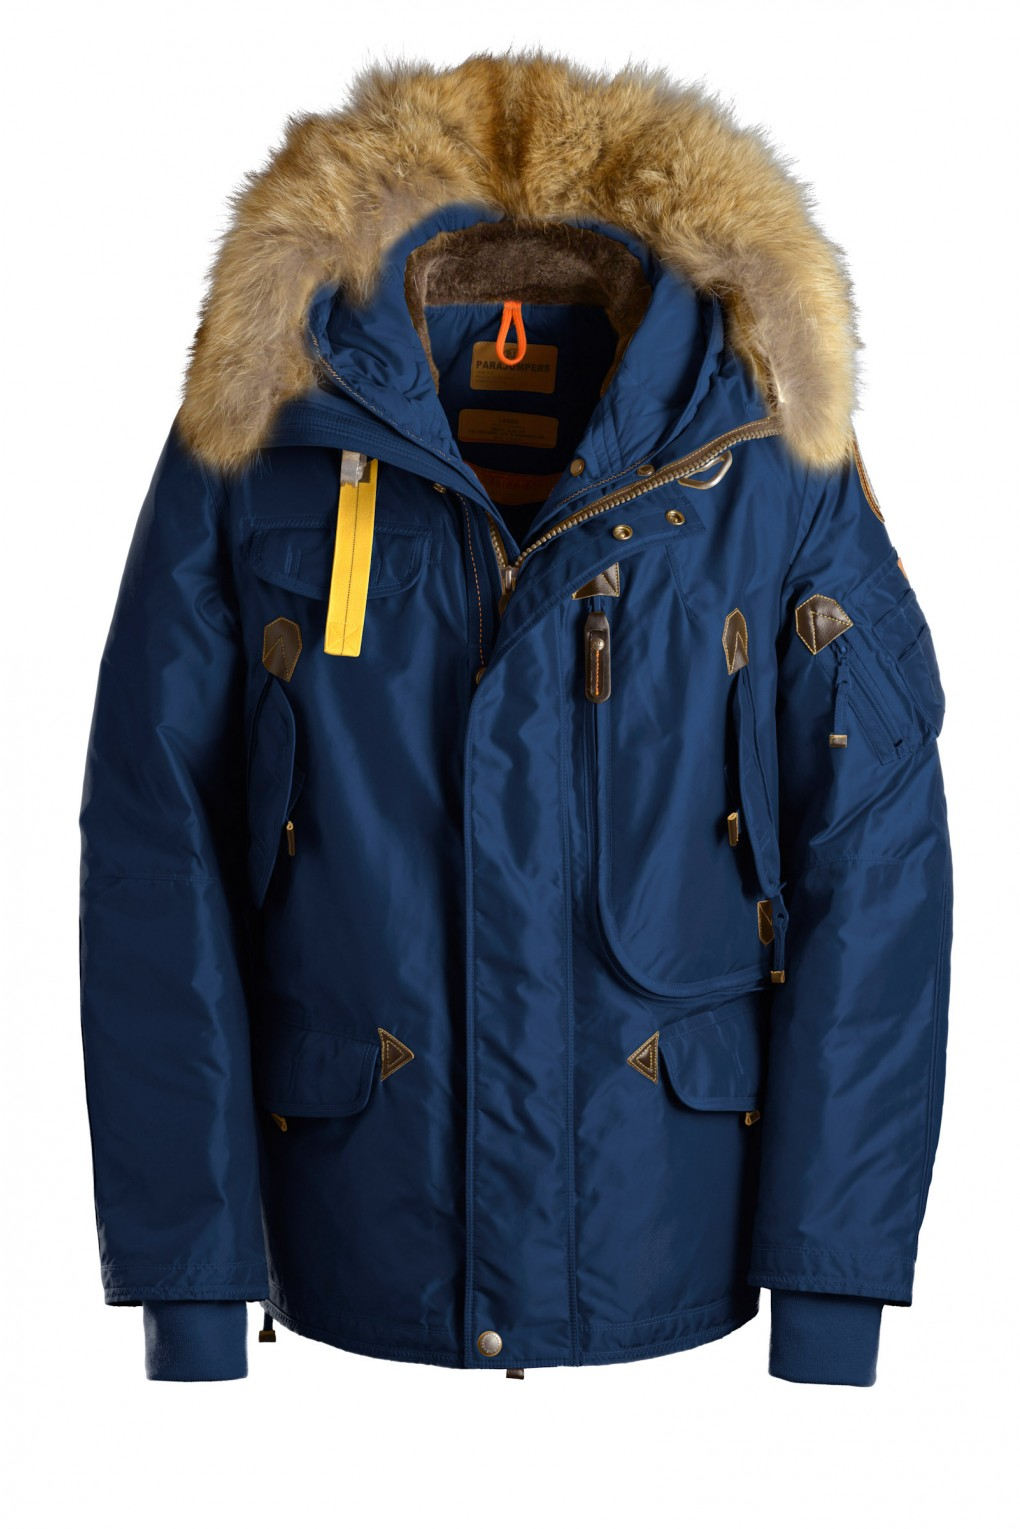 parajumpers RIGHT HAND man outerwear Royal